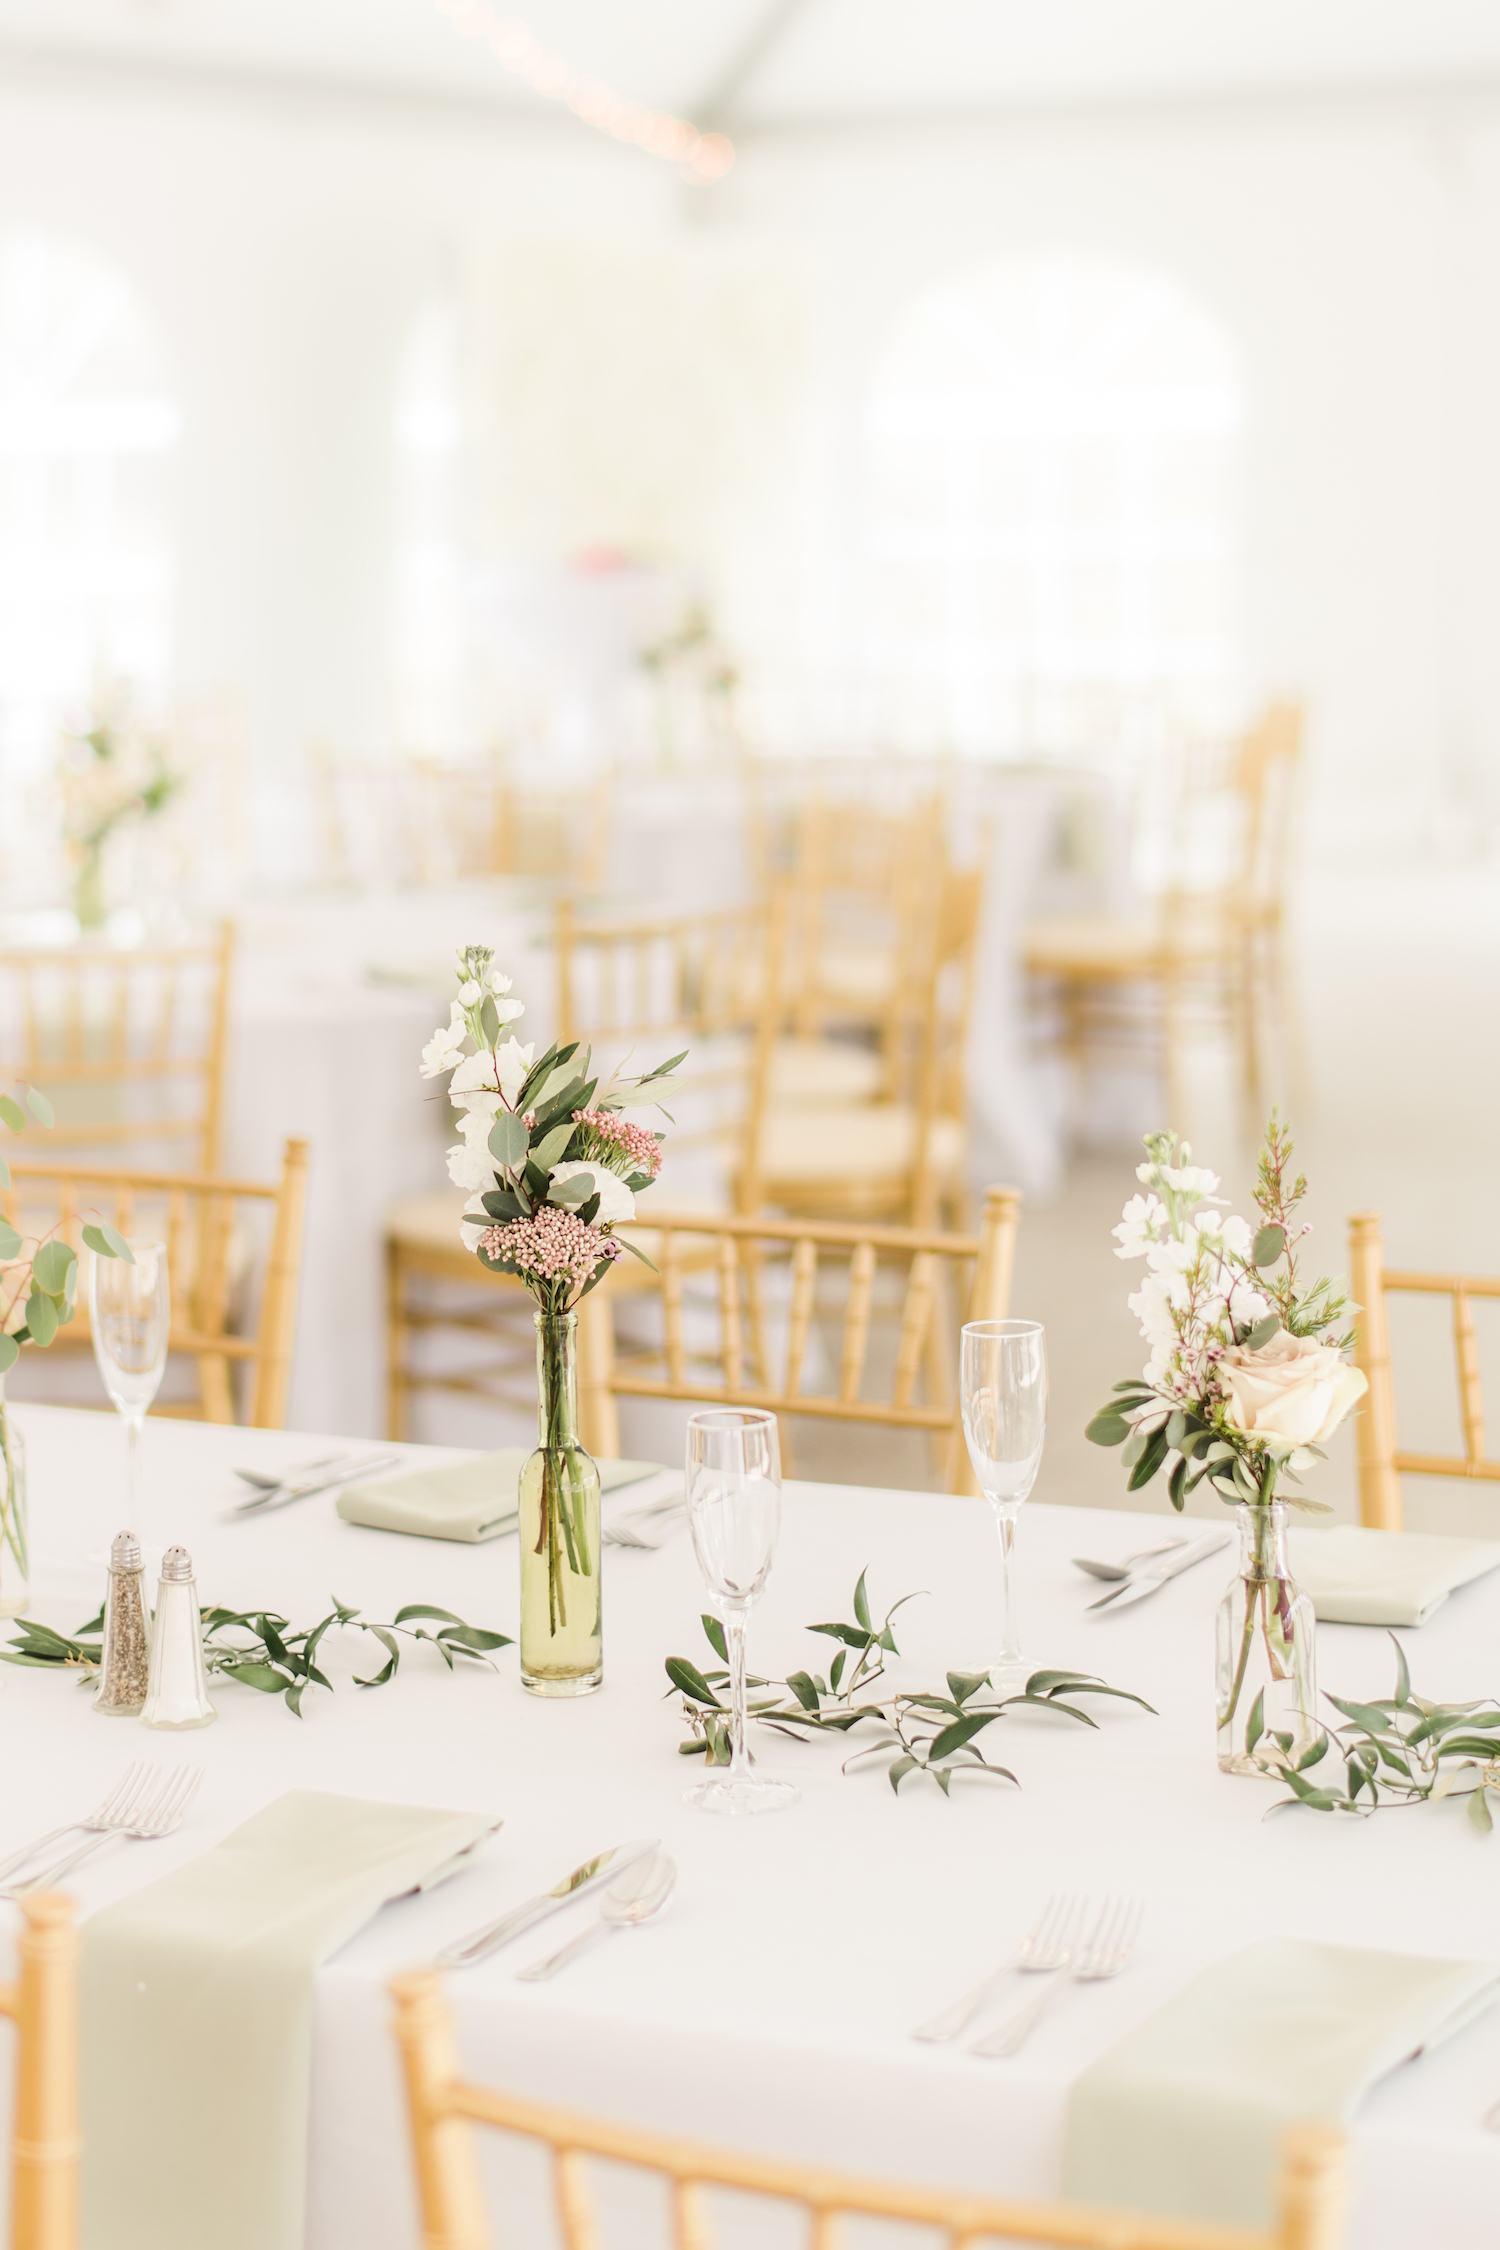 Long tables at Rust Manor House with loose greenery and bud vases. Photography by Stephanie Messick.